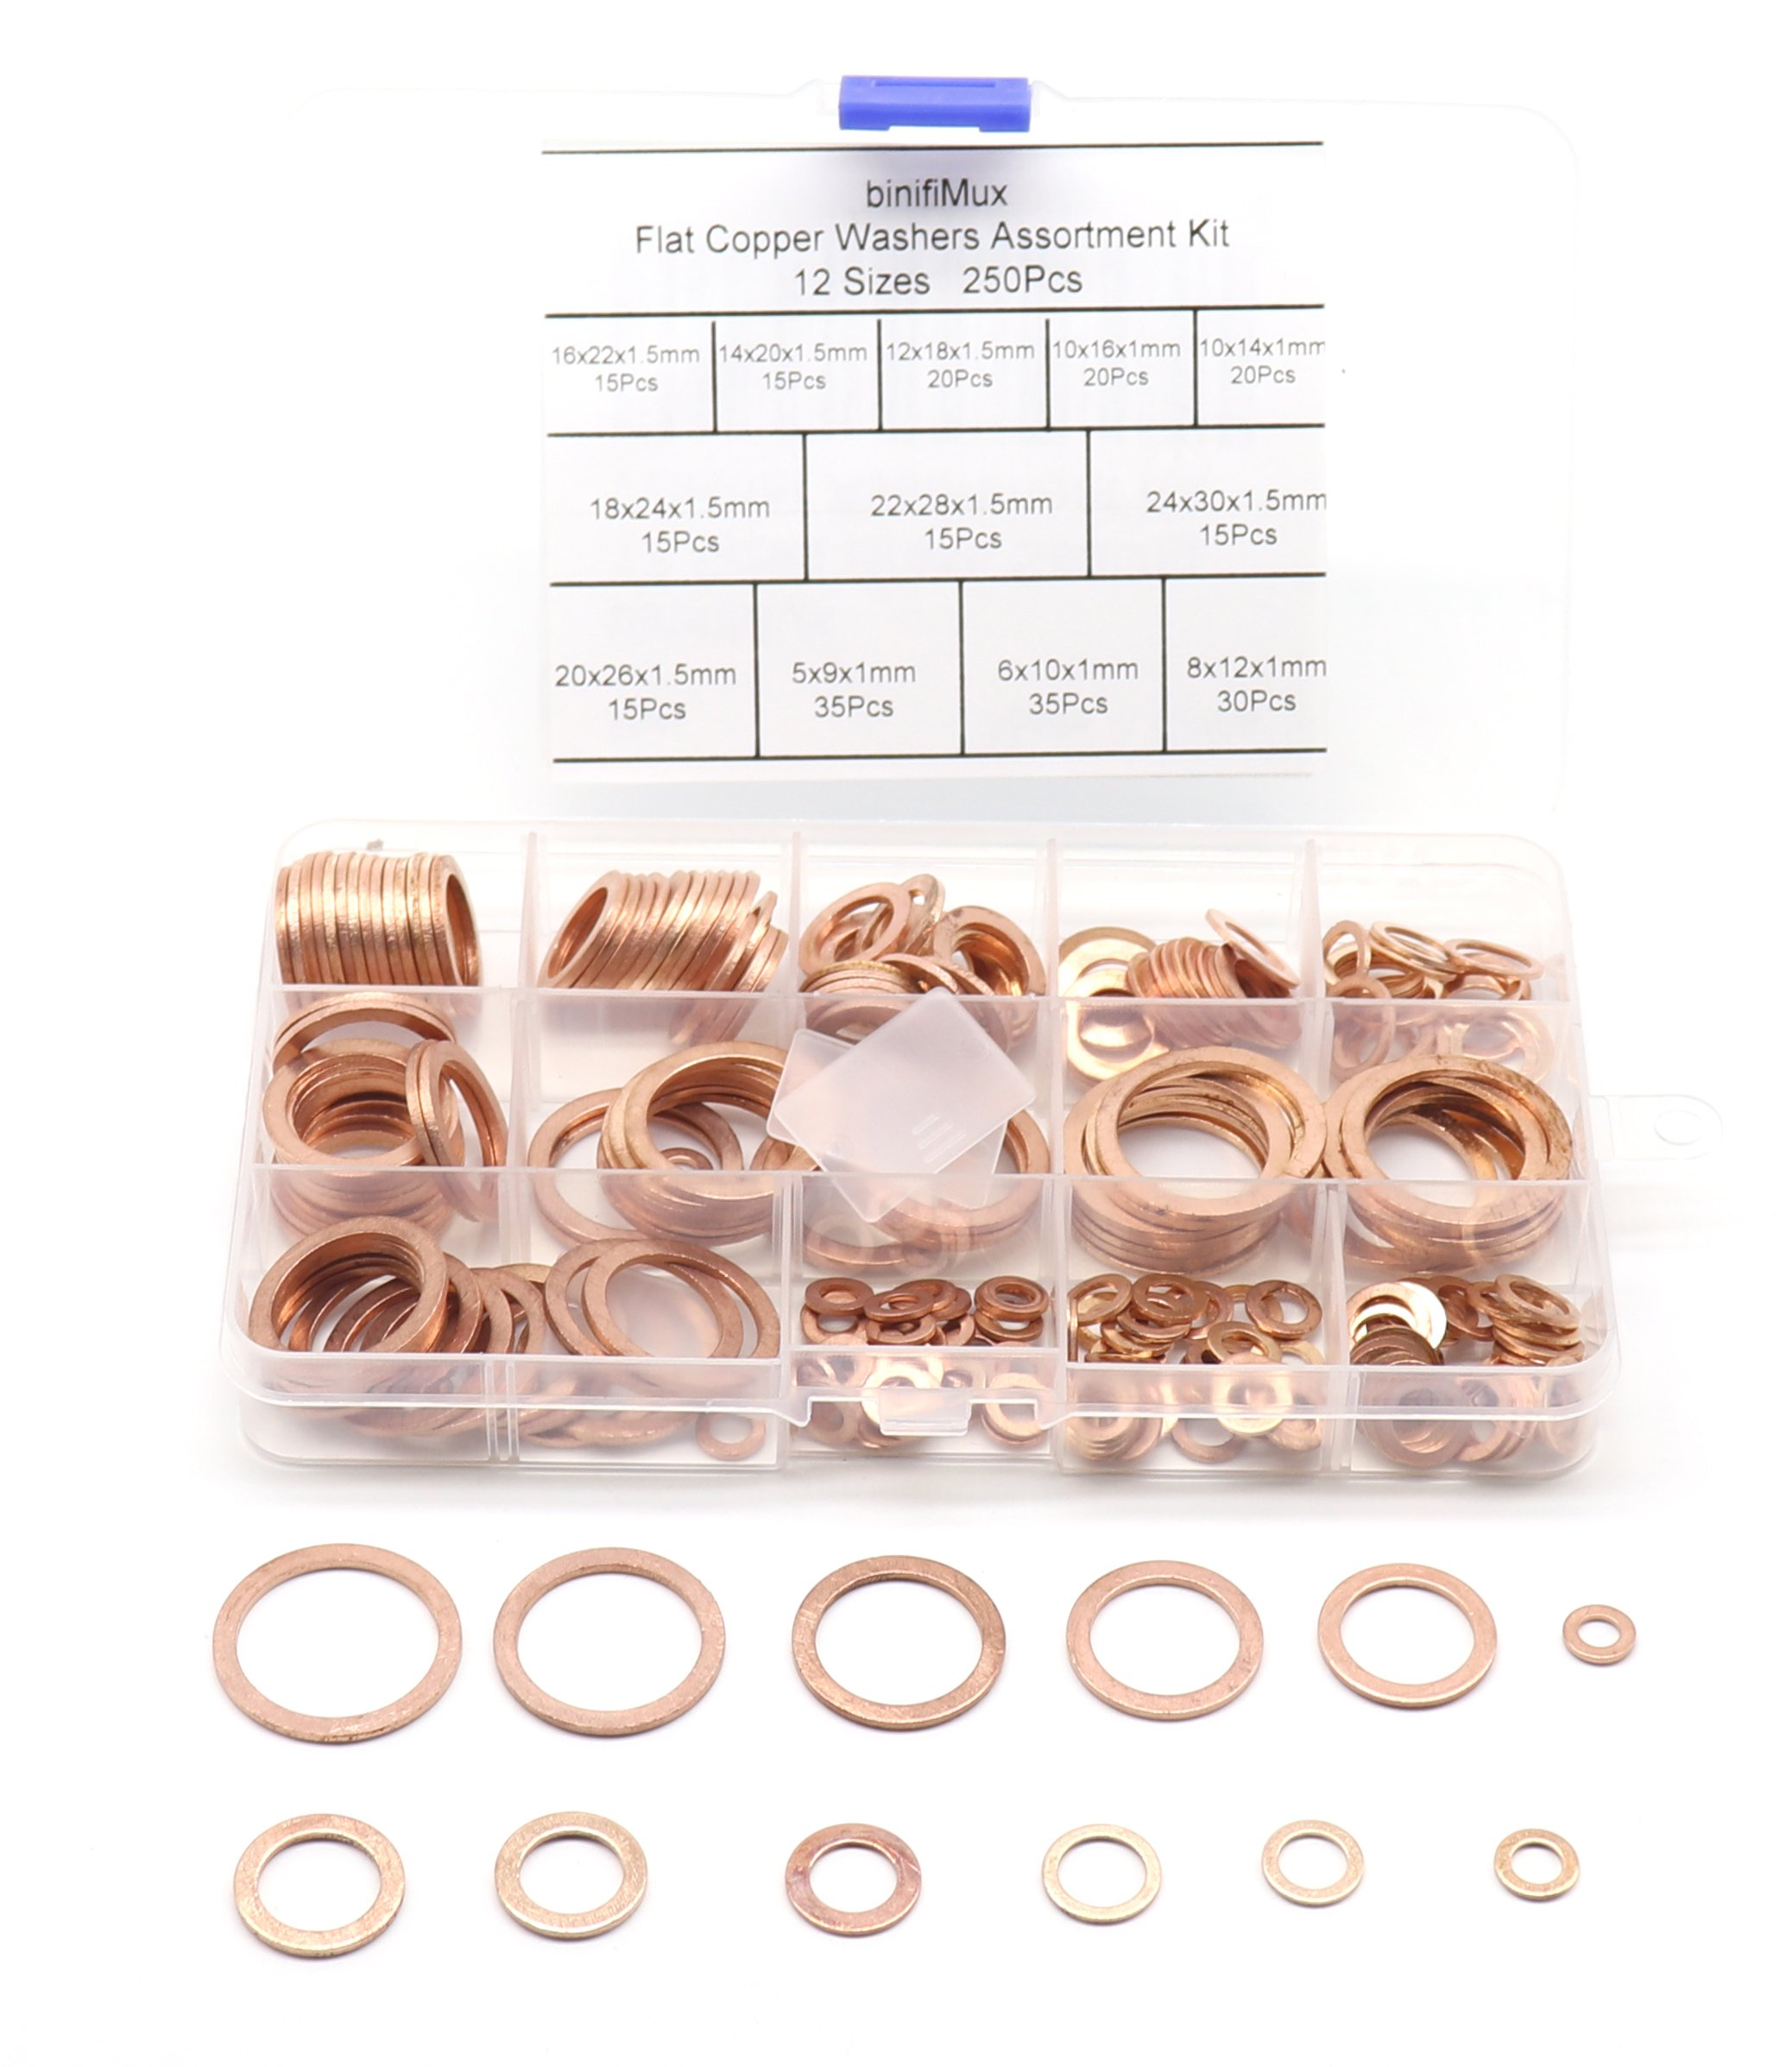 binifiMux 250Pcs 12 Sizes M5 - M24 Metric Flat Copper Washer Assortment Set, Metric Ring Washer